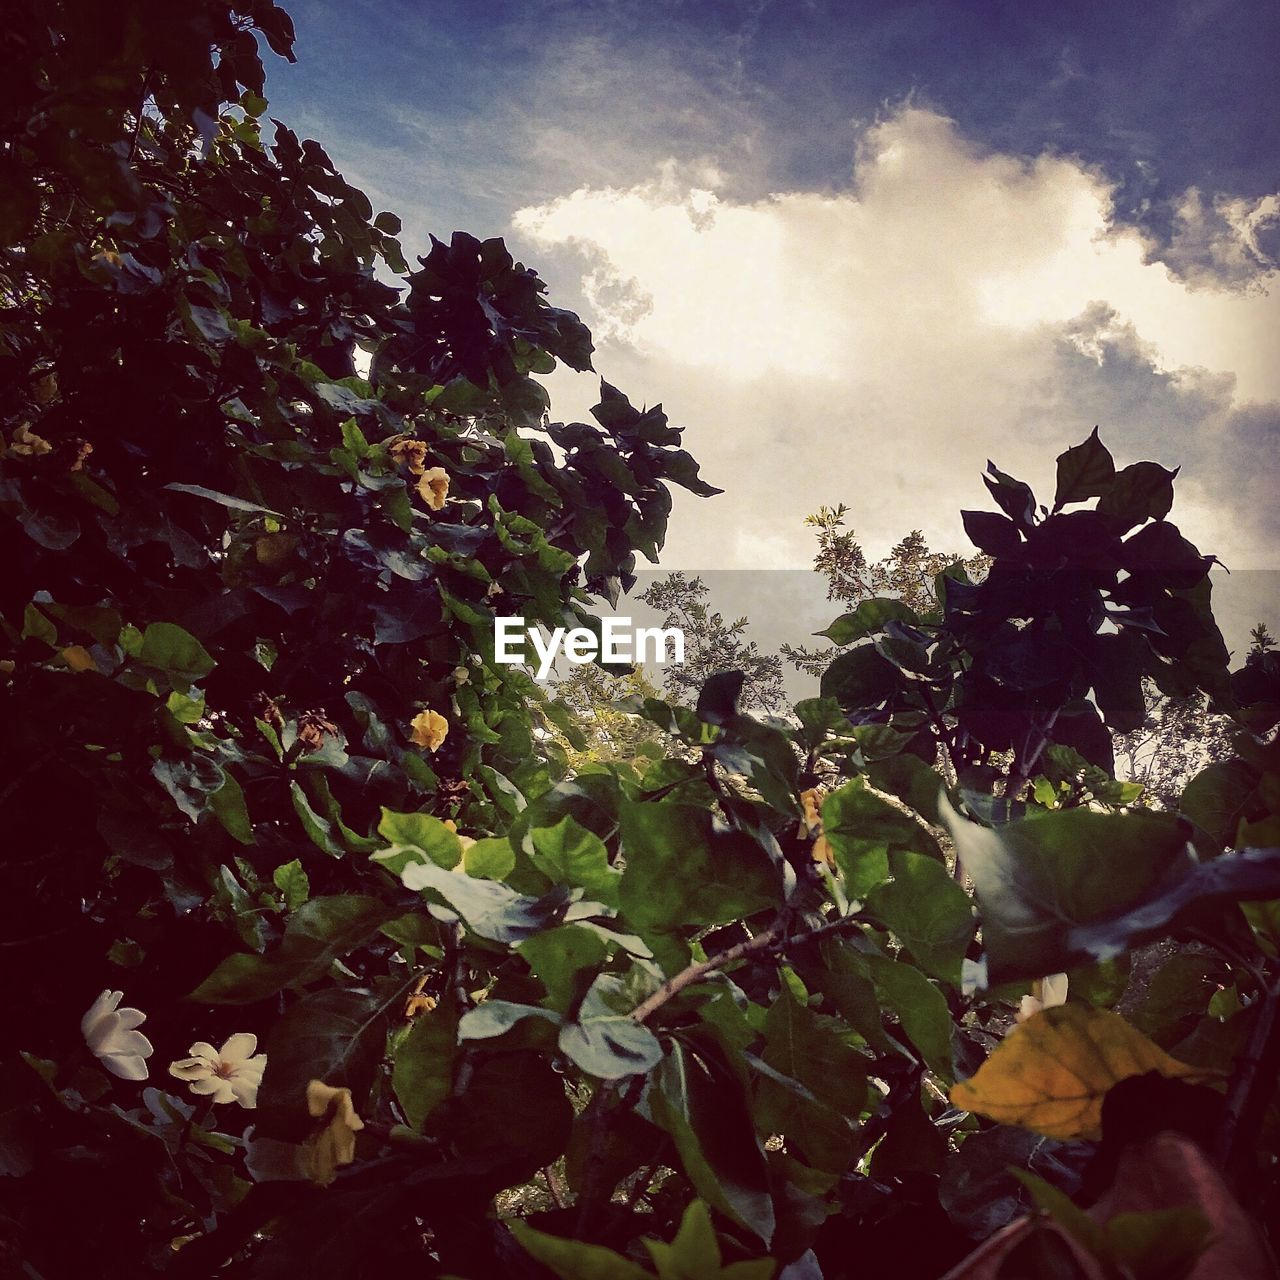 growth, nature, beauty in nature, plant, leaf, no people, outdoors, low angle view, tree, sky, day, cloud - sky, freshness, flower, fragility, close-up